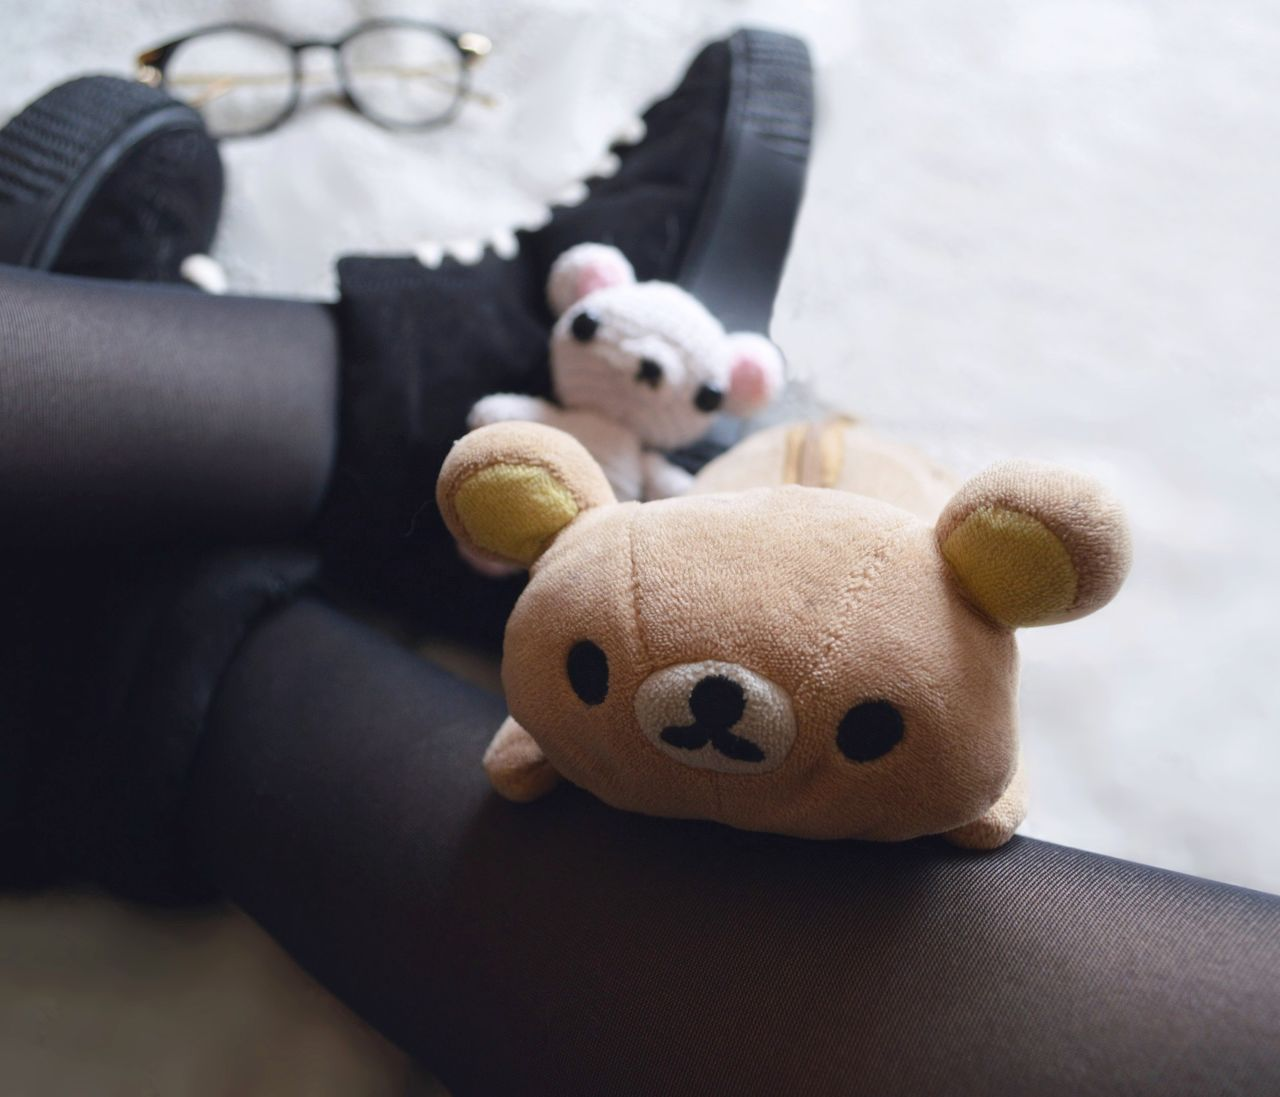 stuffed toy, toy, animal representation, teddy bear, close-up, indoors, human hand, real people, one person, childhood, human body part, panda, day, animal themes, mammal